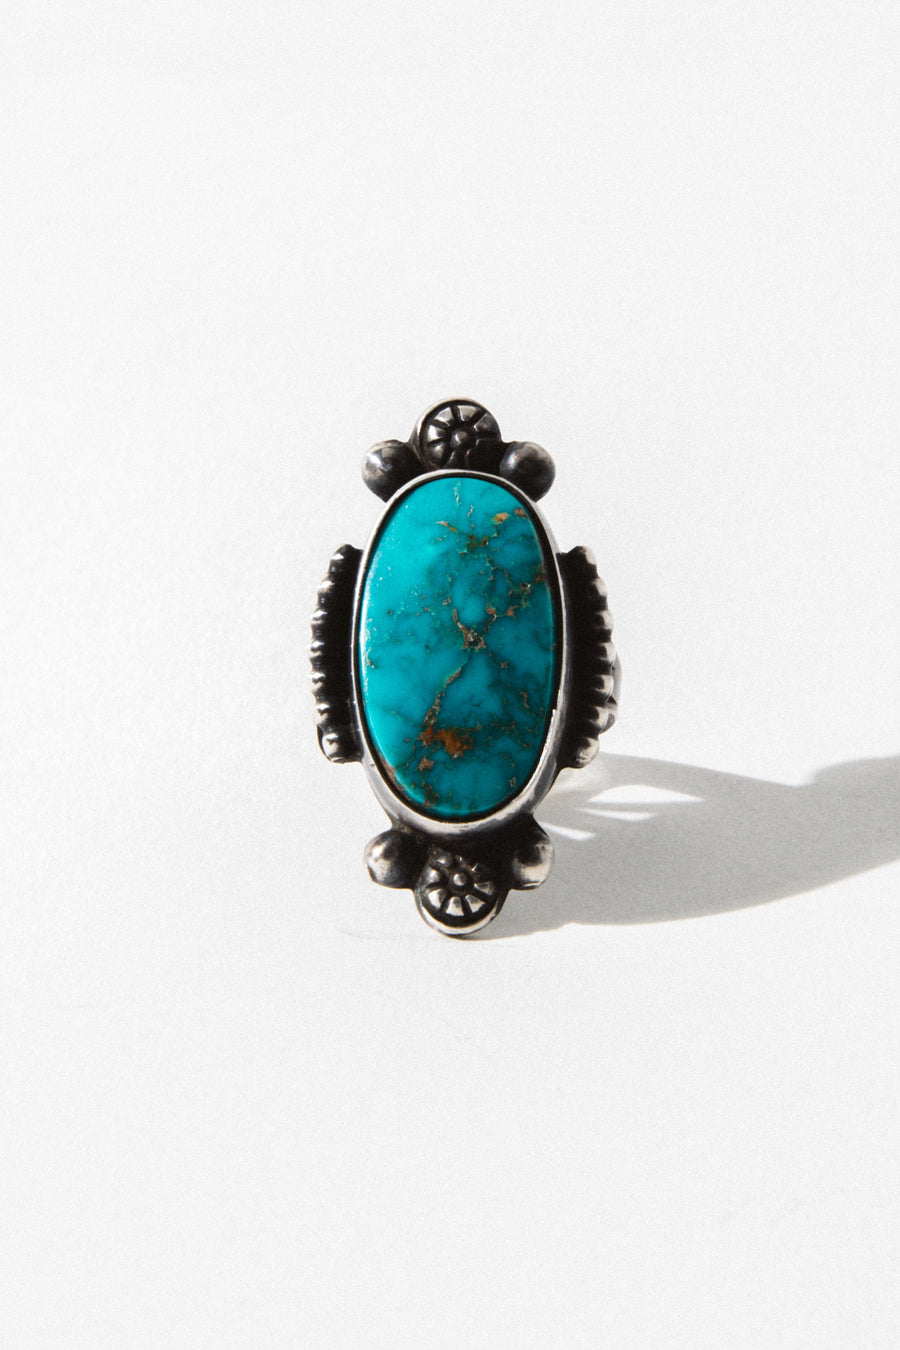 Vintage Native American Jewelry Silver / US 6 Flora Turquoise Native American Ring